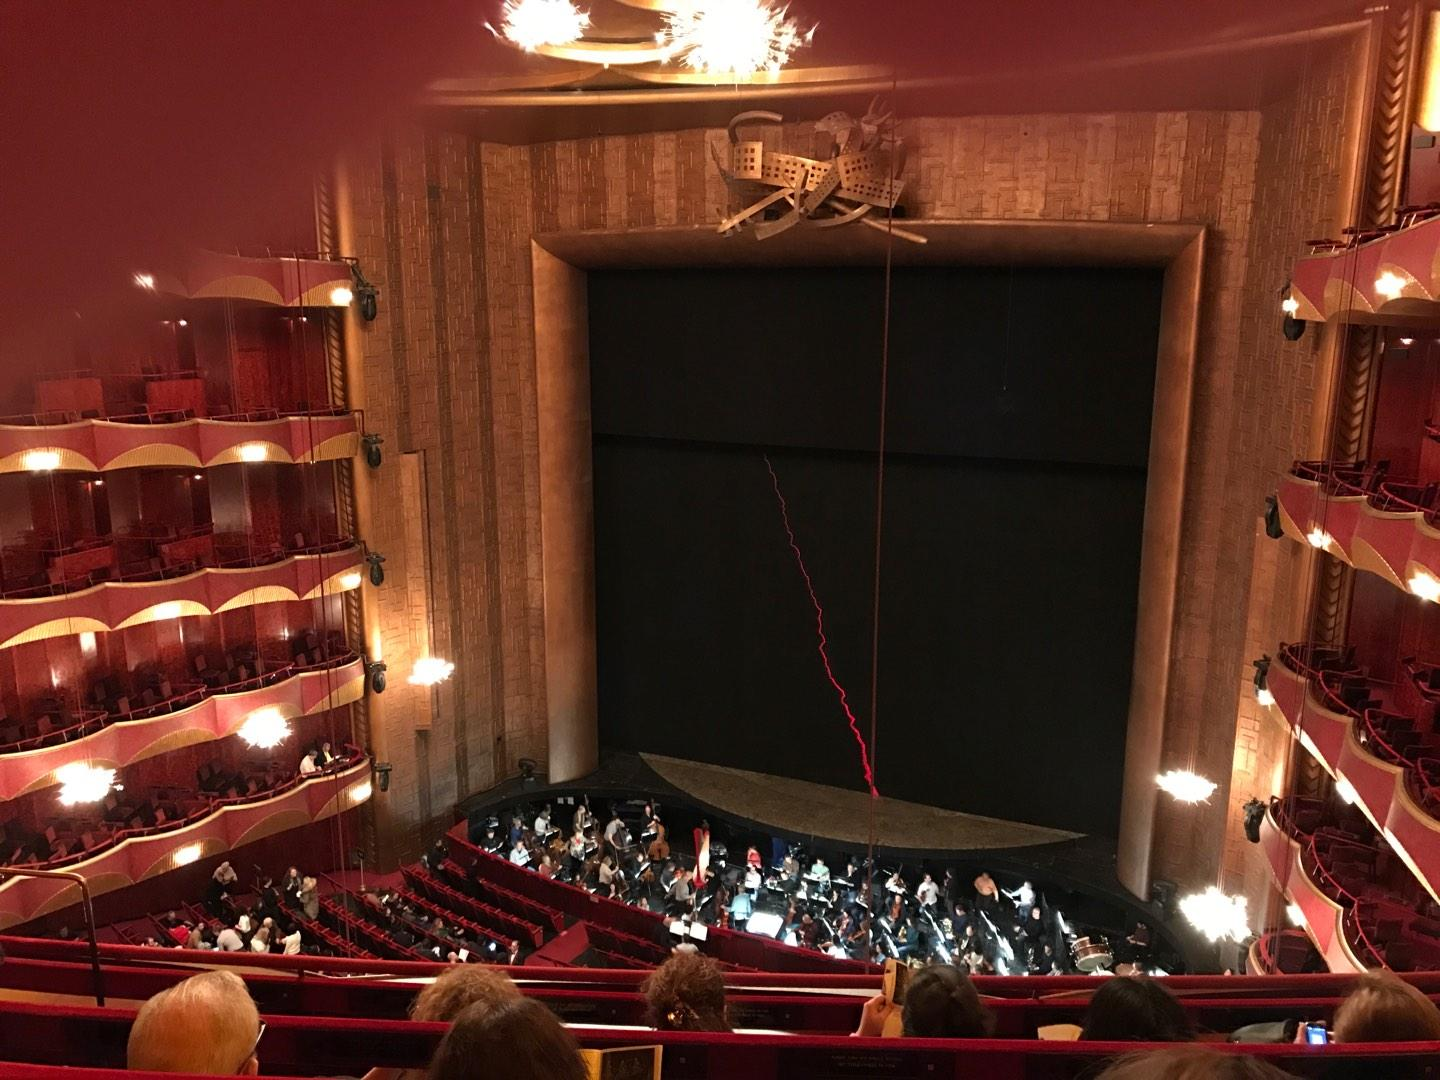 Metropolitan Opera House - Lincoln Center Section Balcony Row D Seat 10